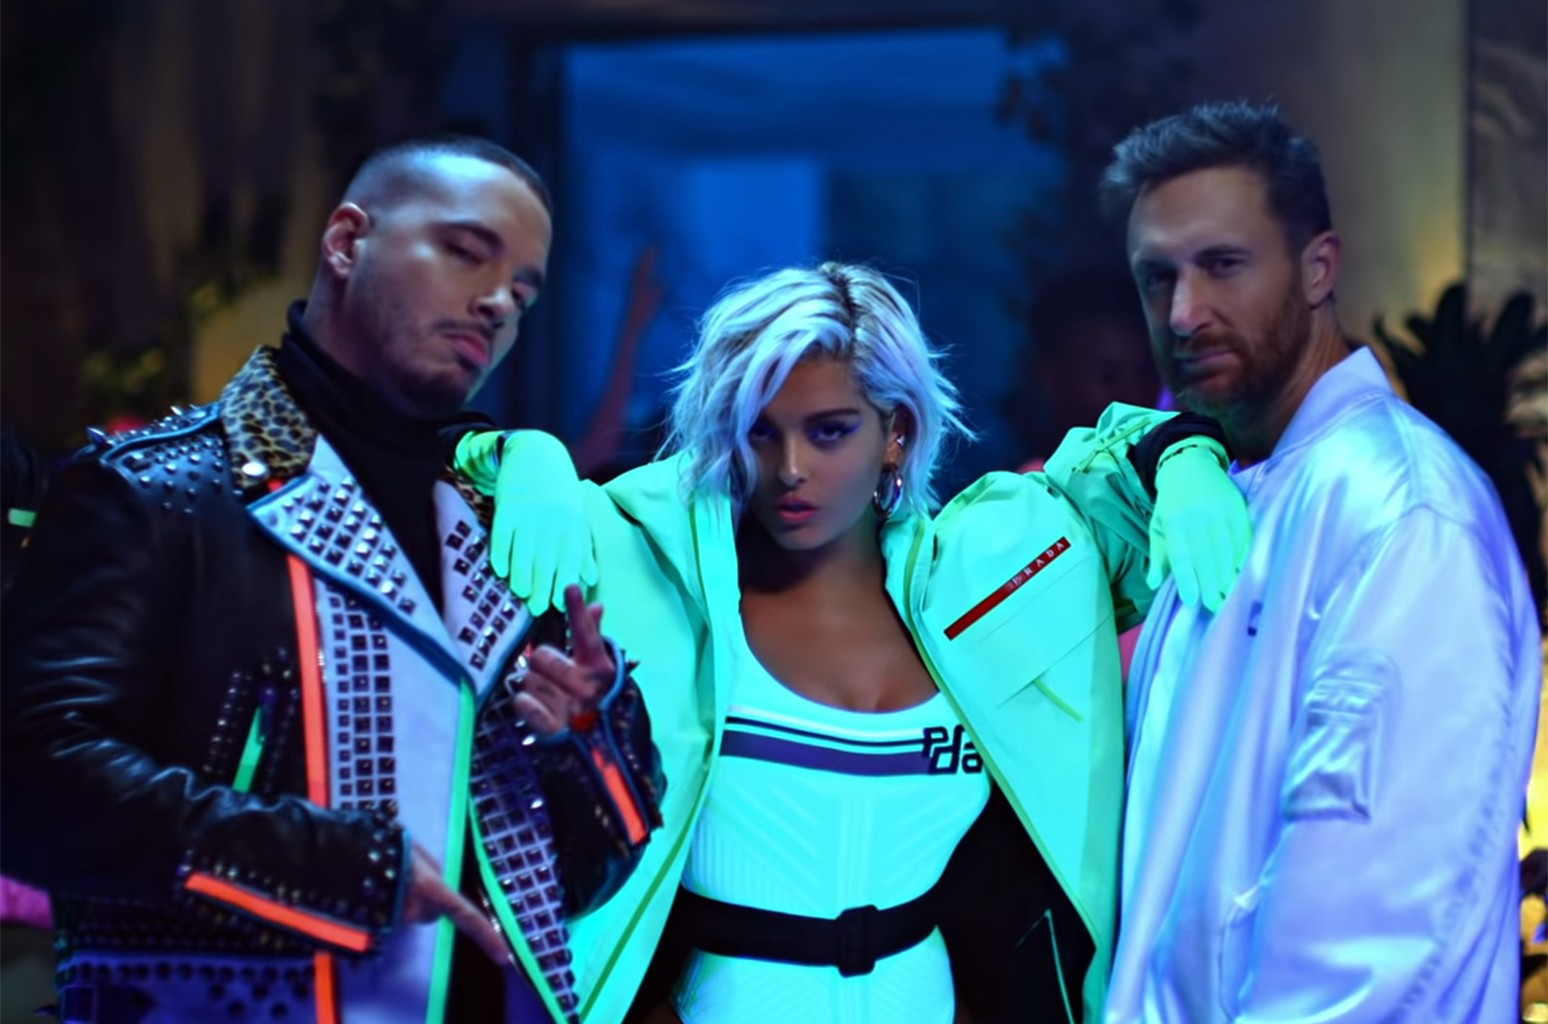 David Guetta Bebe Rexha J Balvin S Say My Name Video Watch Billboard Billboard